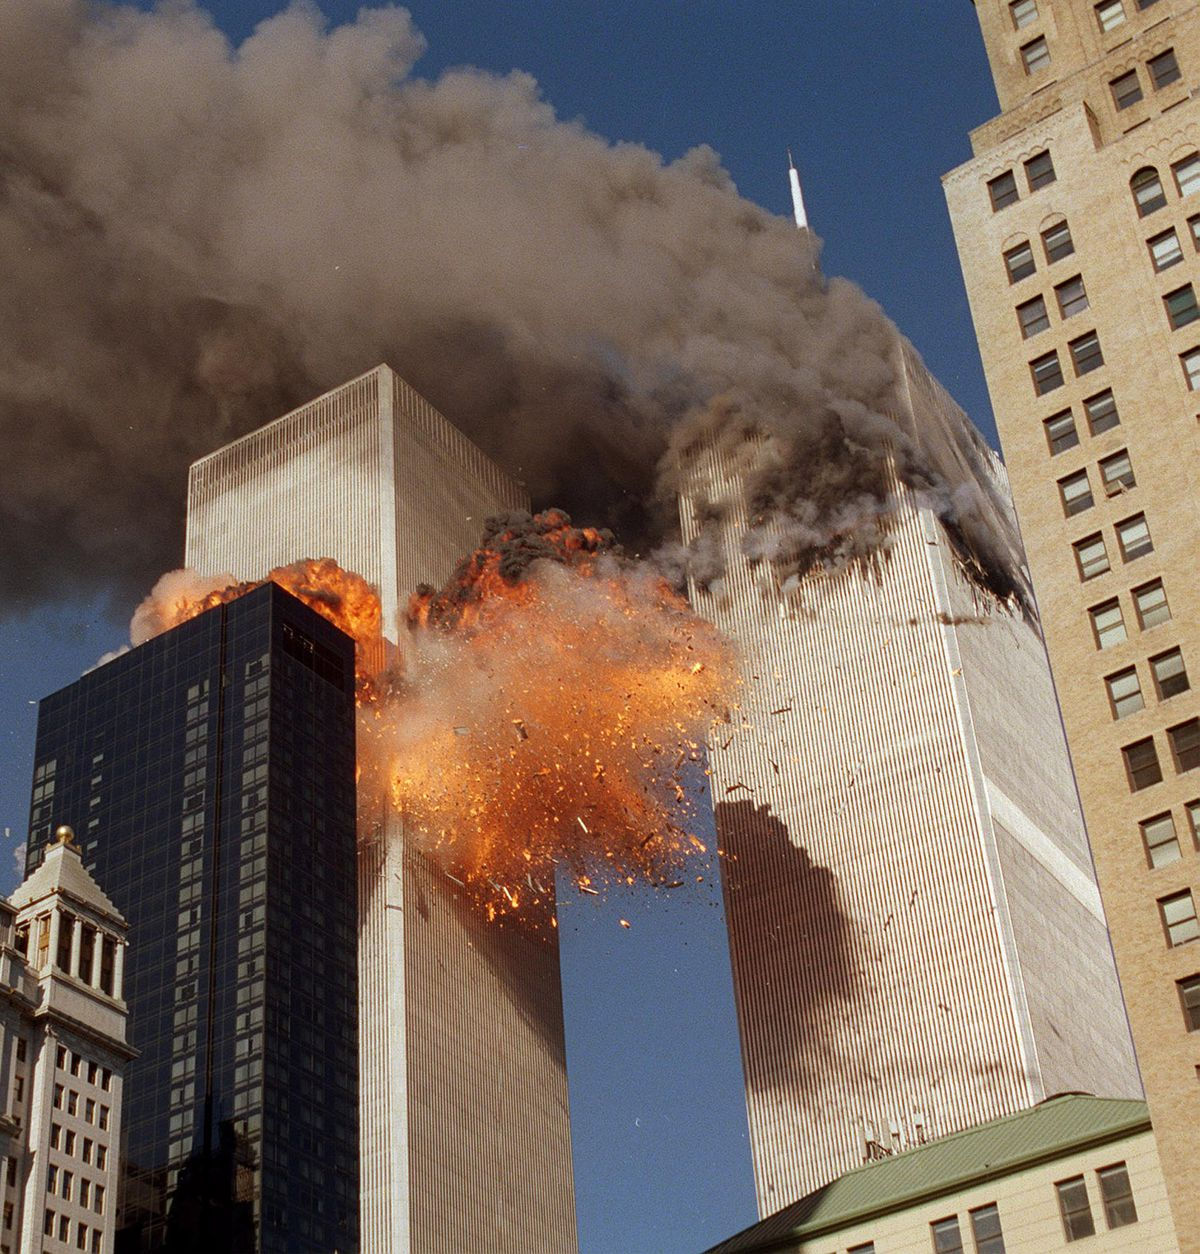 Smoke billows from one of the towers of the World Trade Center as flames and debris explode from the second tower in this Sept. 11, 2001 file photo in New York.